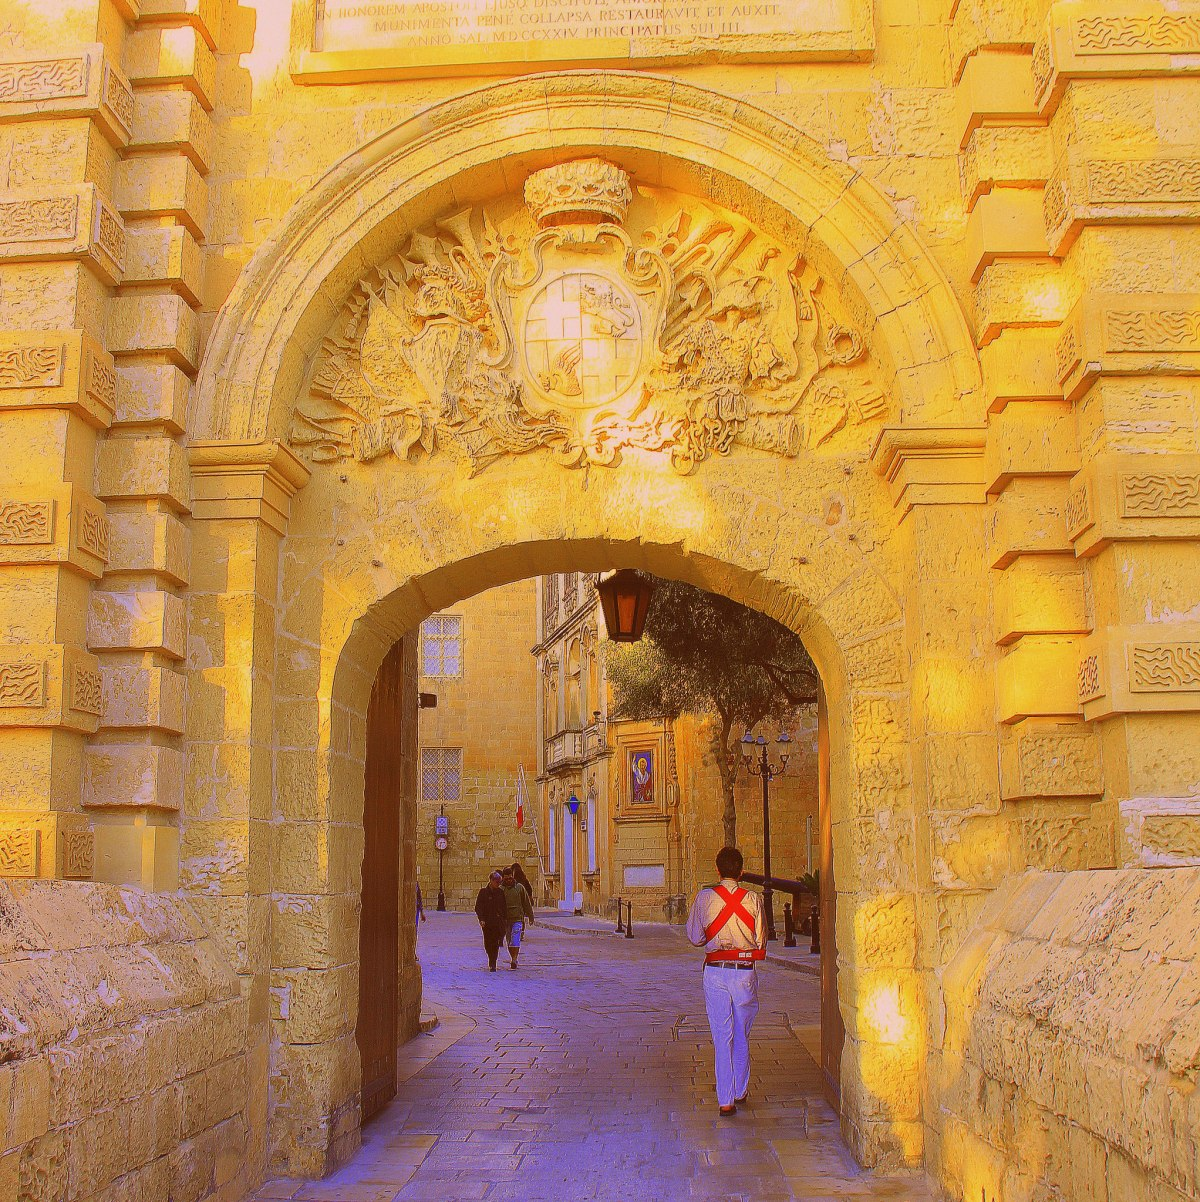 Game of Thrones has been filmed at Mdina